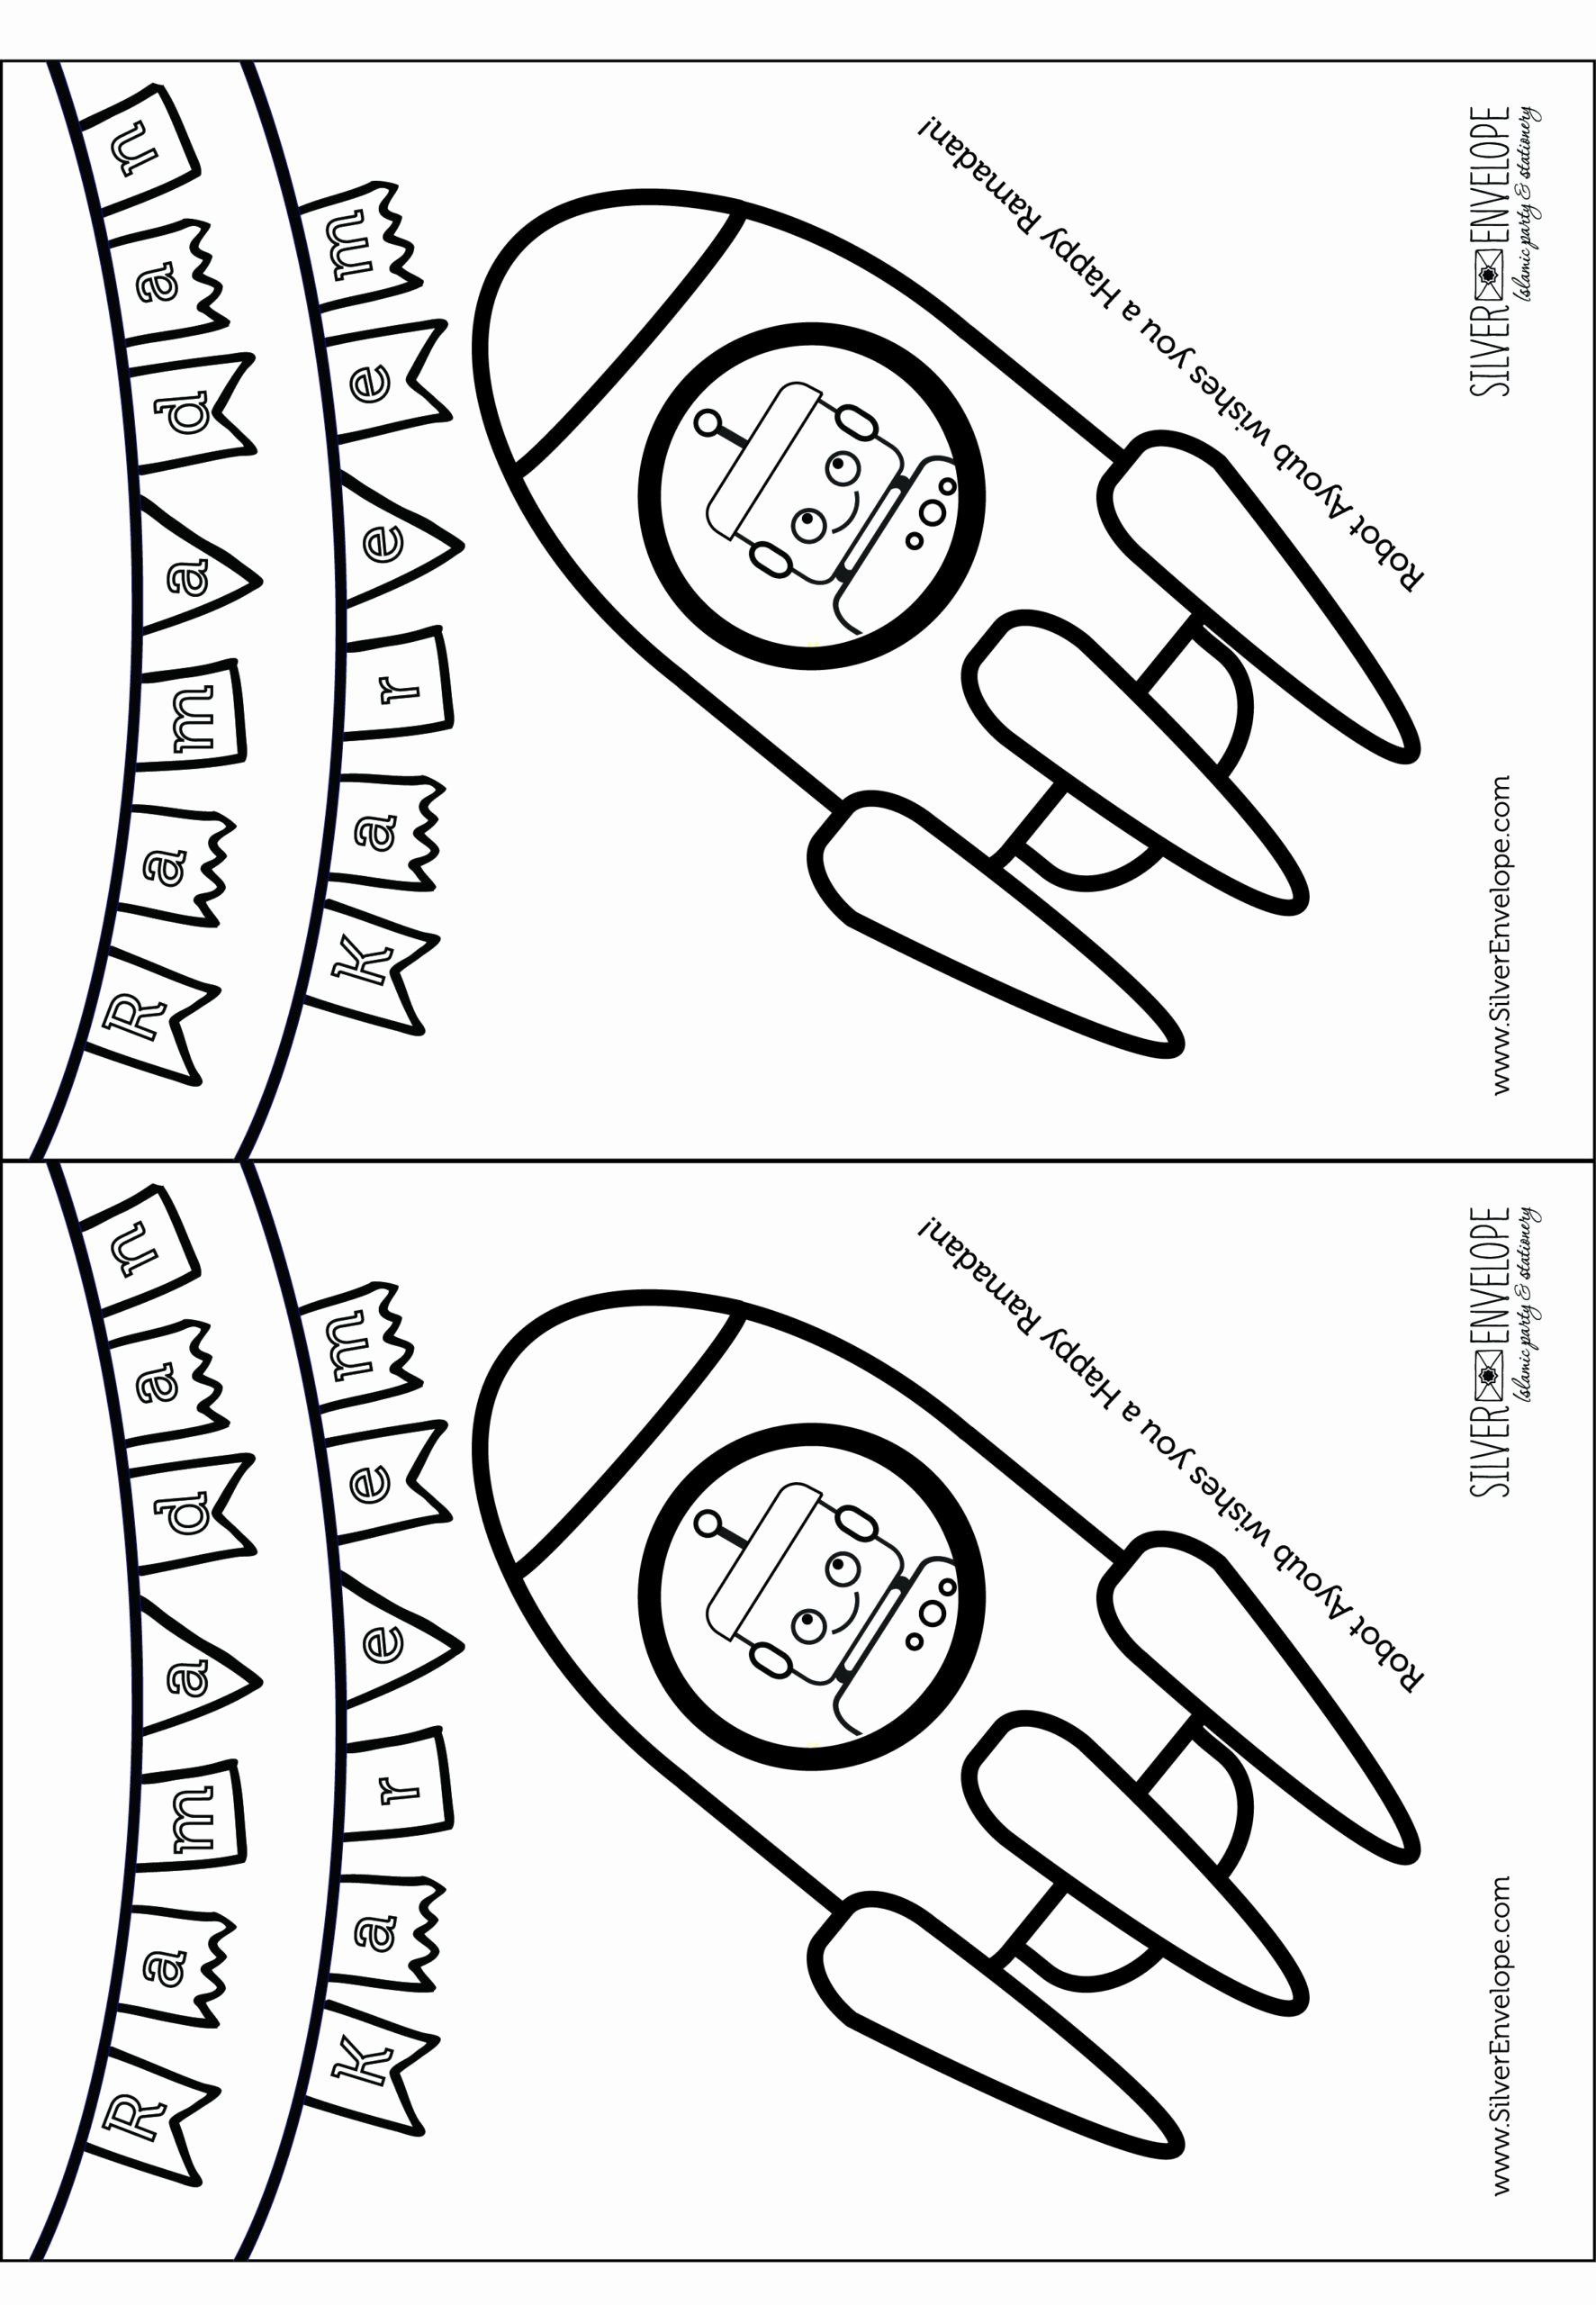 Islamic Coloring Activities Lovely Eid Worksheet Printables Friedpost Coloring In 2020 Color Activities Coloring Pages For Girls Coloring Pages